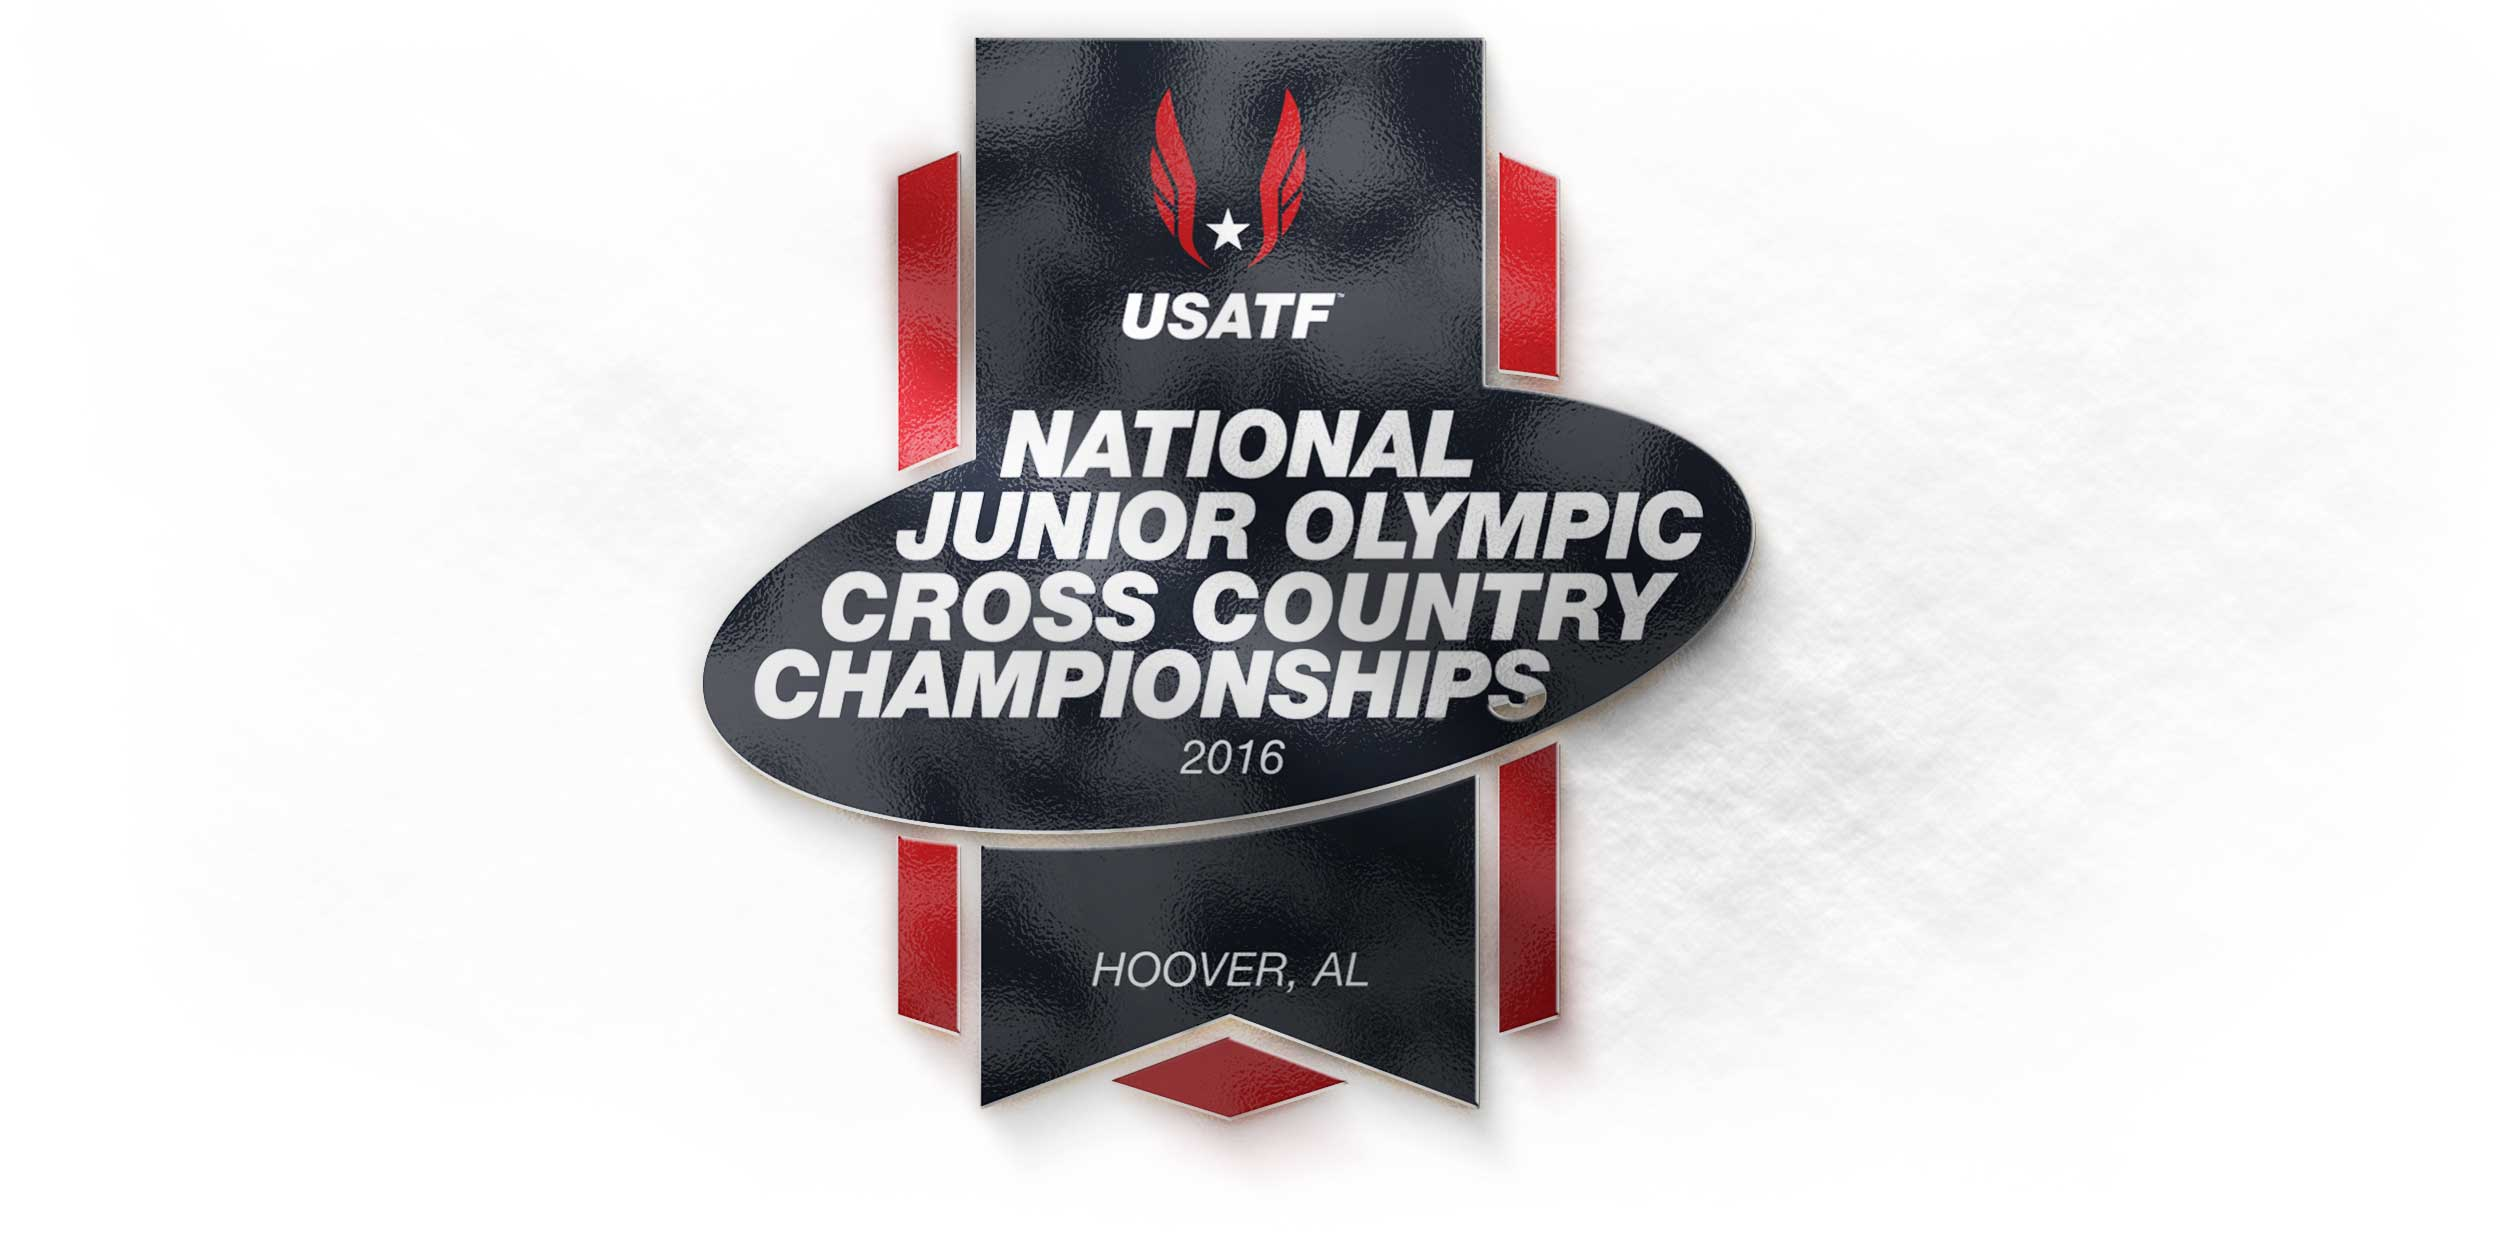 national-junior-olympic-cross-country-champinships